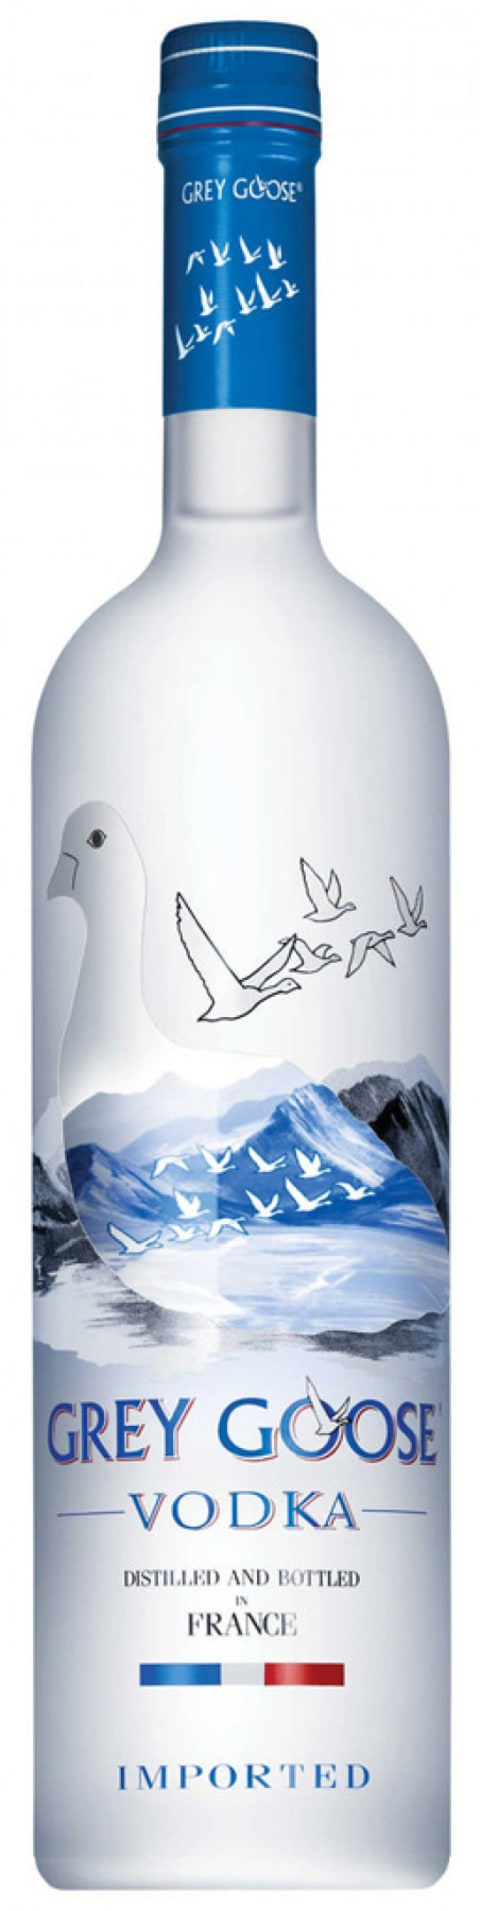 Grey Goose Vodka Front Bottle Shot